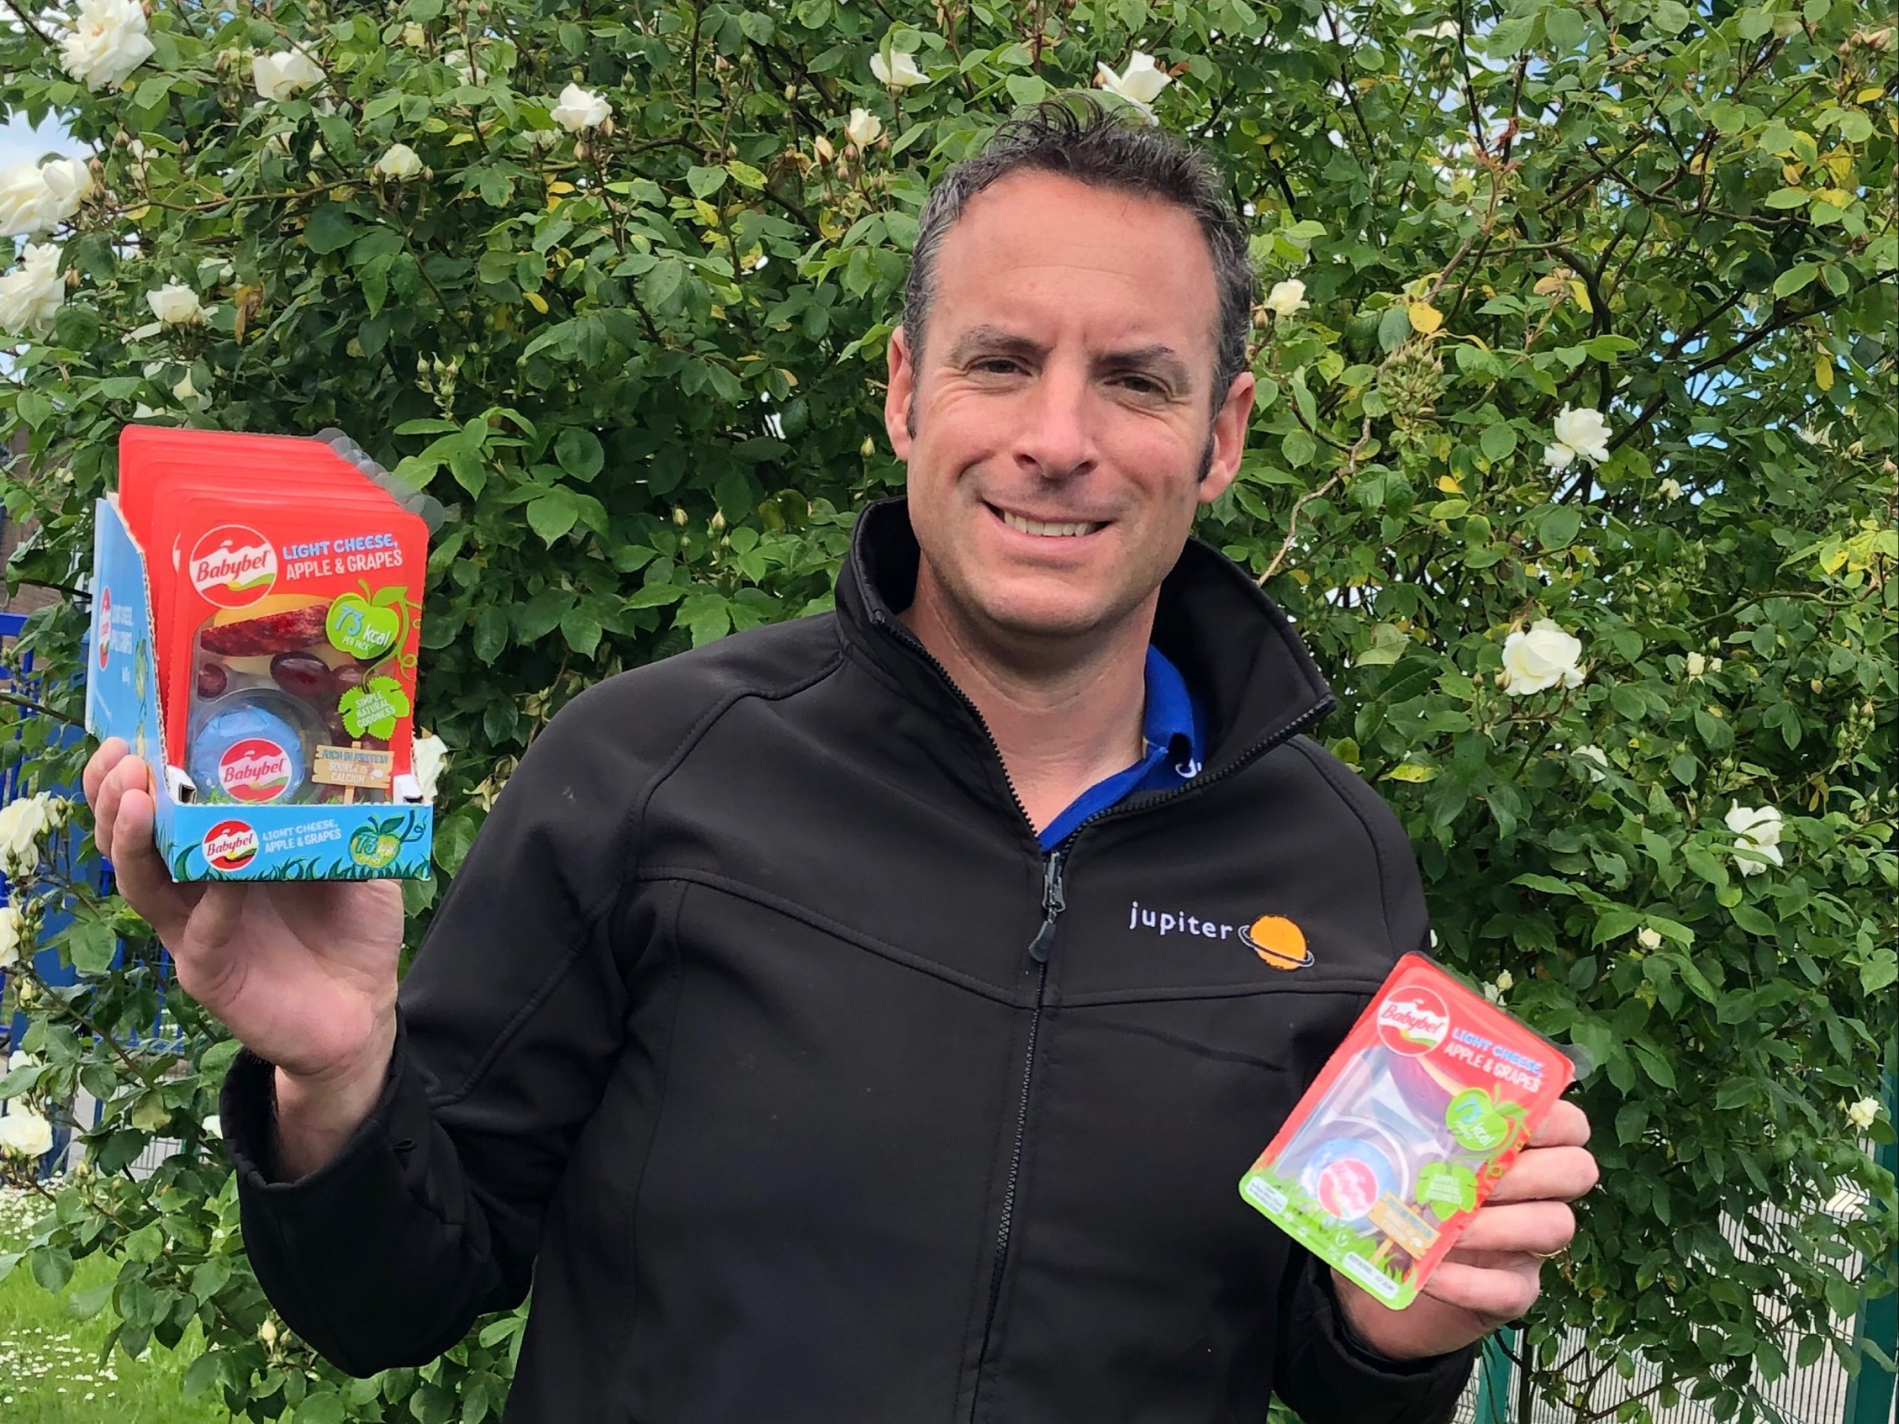 Jupiter Group's CEO Mark Tweddle and Babybel® launch snackpack